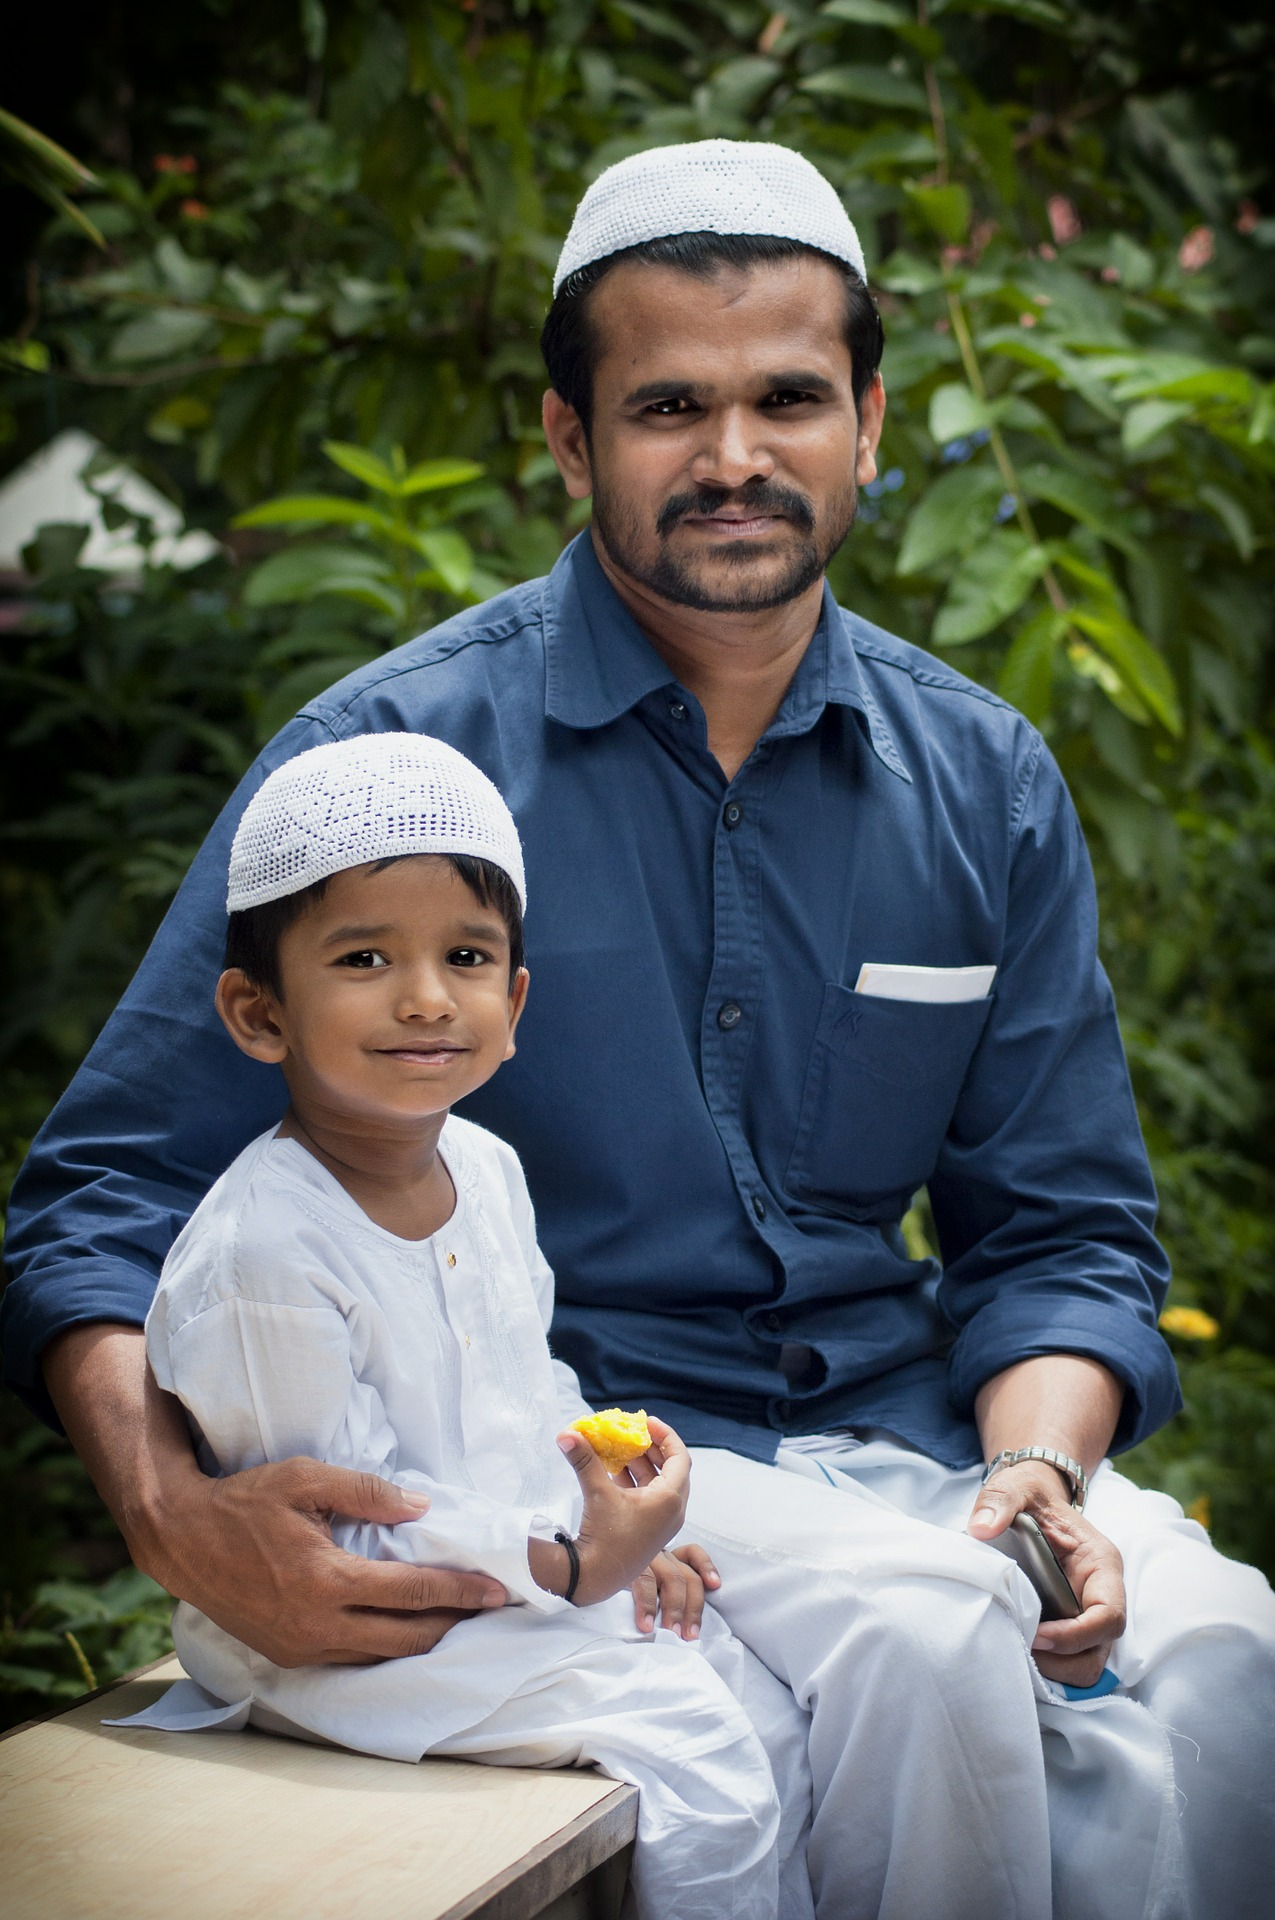 Muslims across the globe has celebrated Eid-Ul-Fitr at home